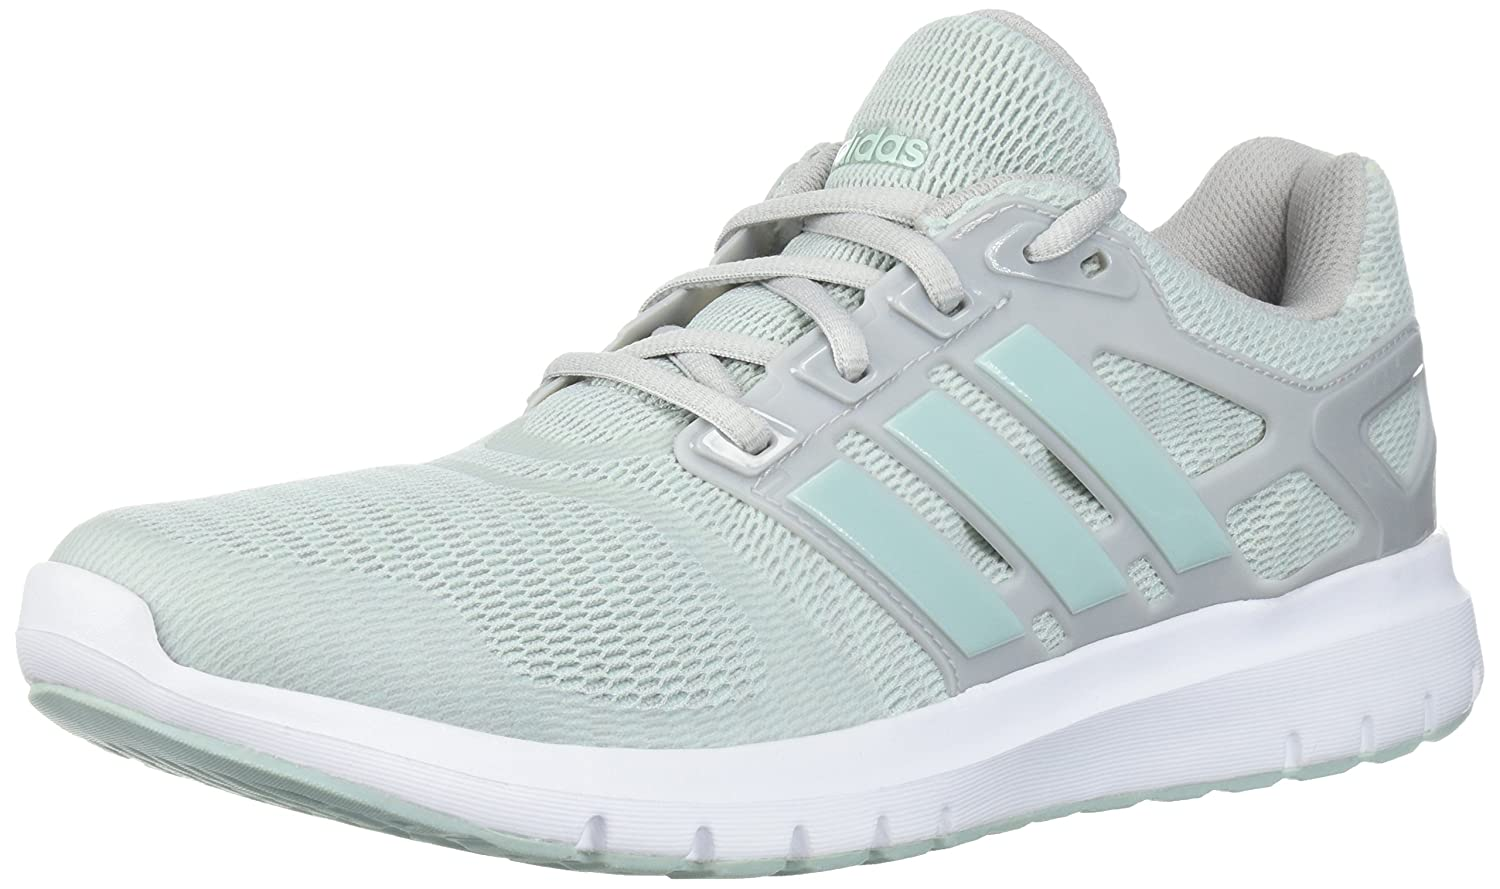 adidas Women's Energy Cloud V Running Shoe B072FHNDV9 7 B(M) US|Grey Two/Ash Green/Ash Green